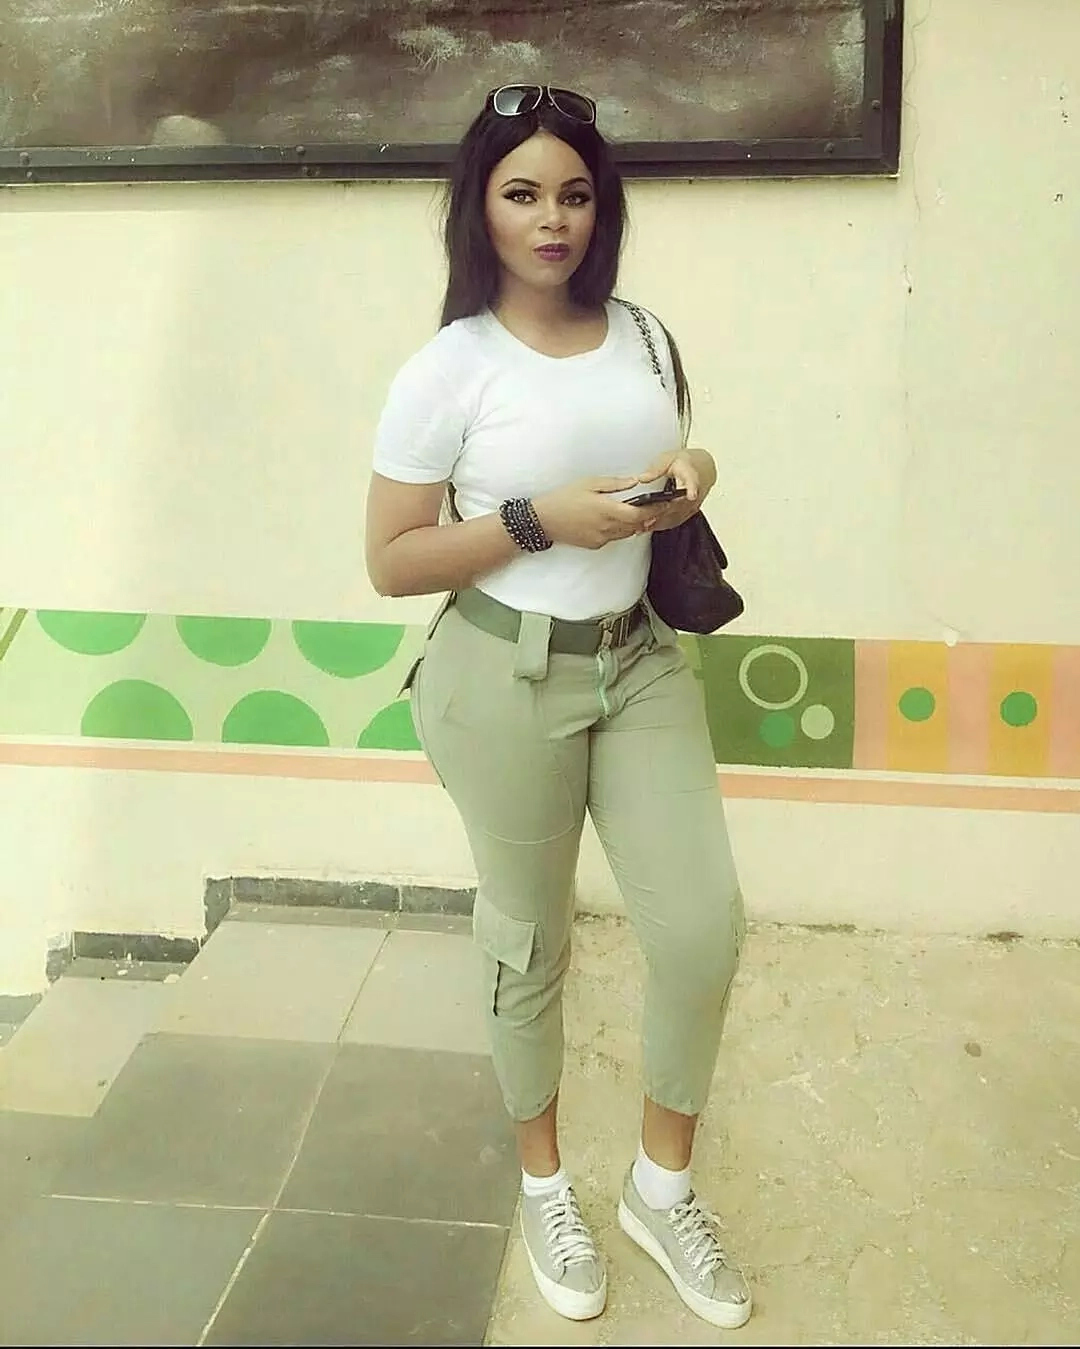 smngoz38s59b7qqdmg.76763629 - NYSC Most beautiful , Sexy , Dope , Frosh and Delicious Female Corps Members